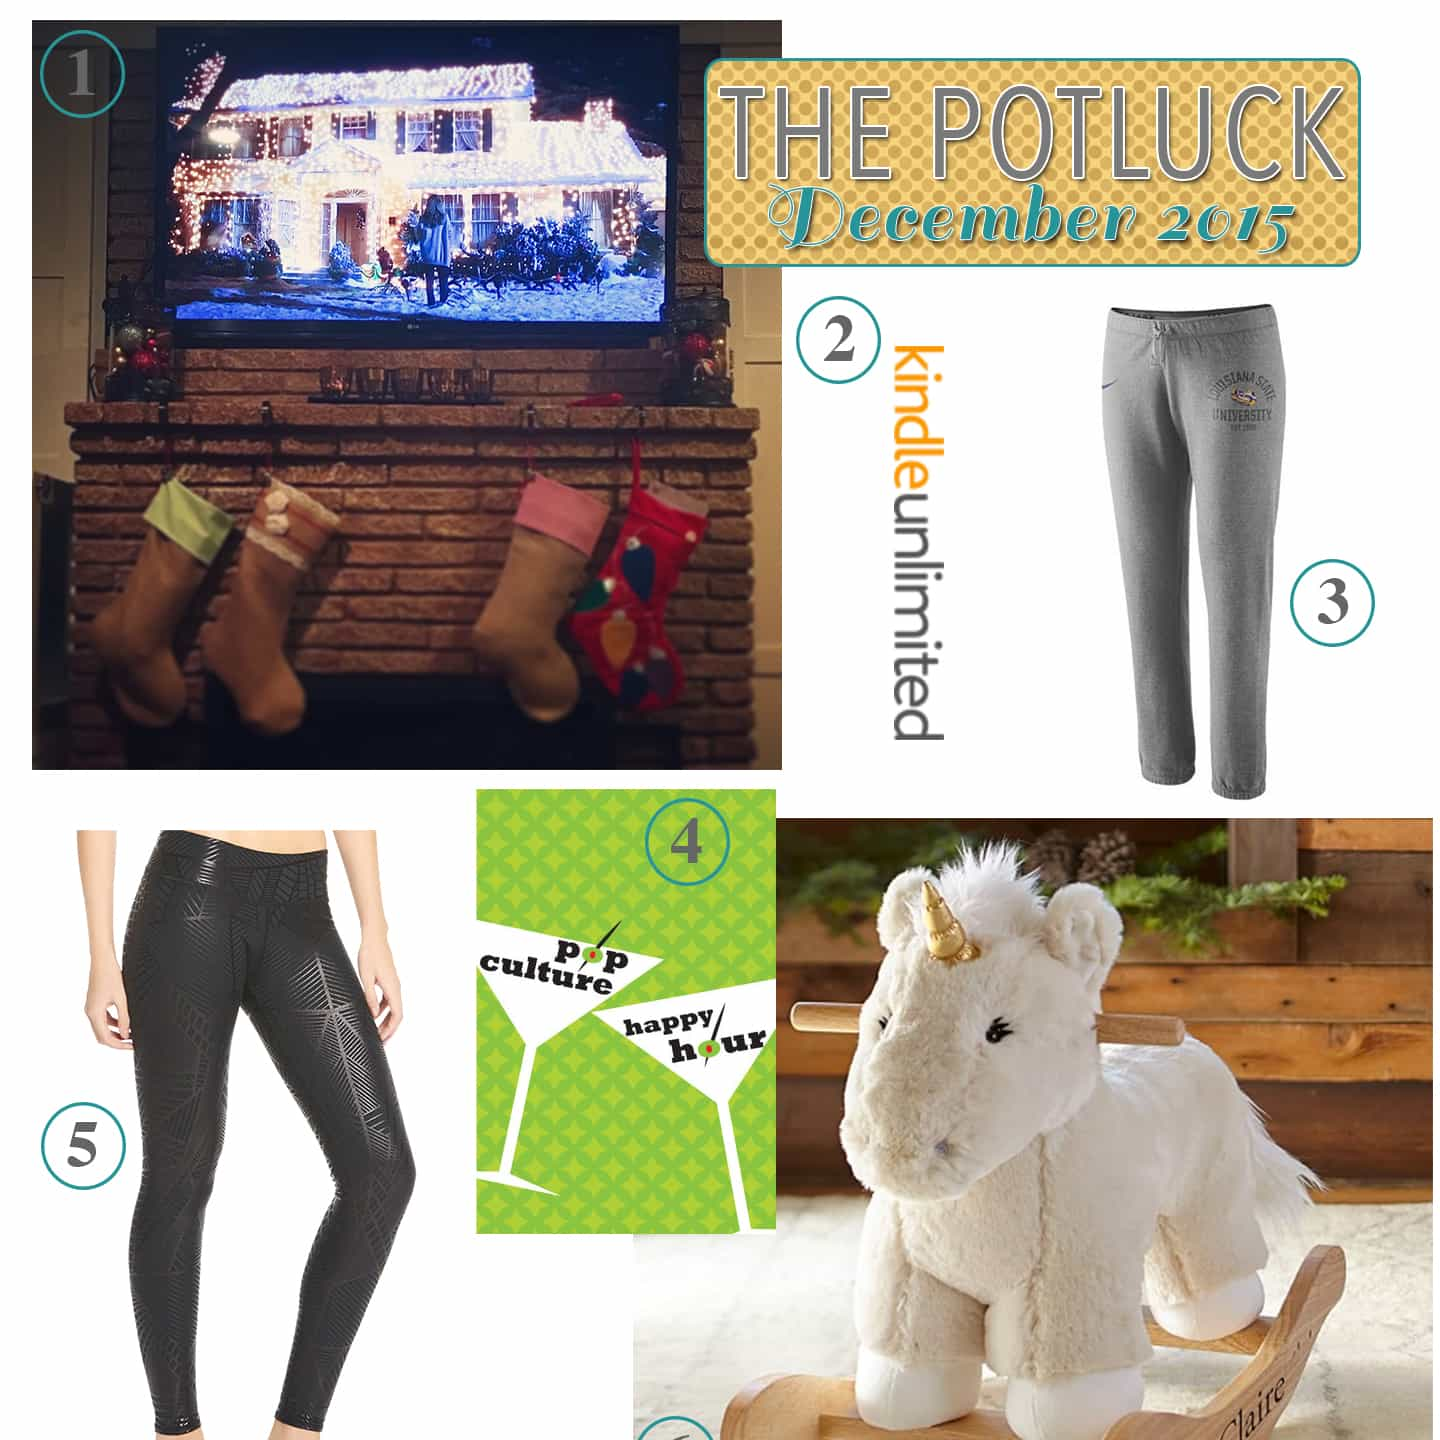 The Potluck: December 2015 | Continuing the monthly tradition, The Potluck: December 2015 includes new traditions, two awesome pairs of pants, a podcast recommendation and more!